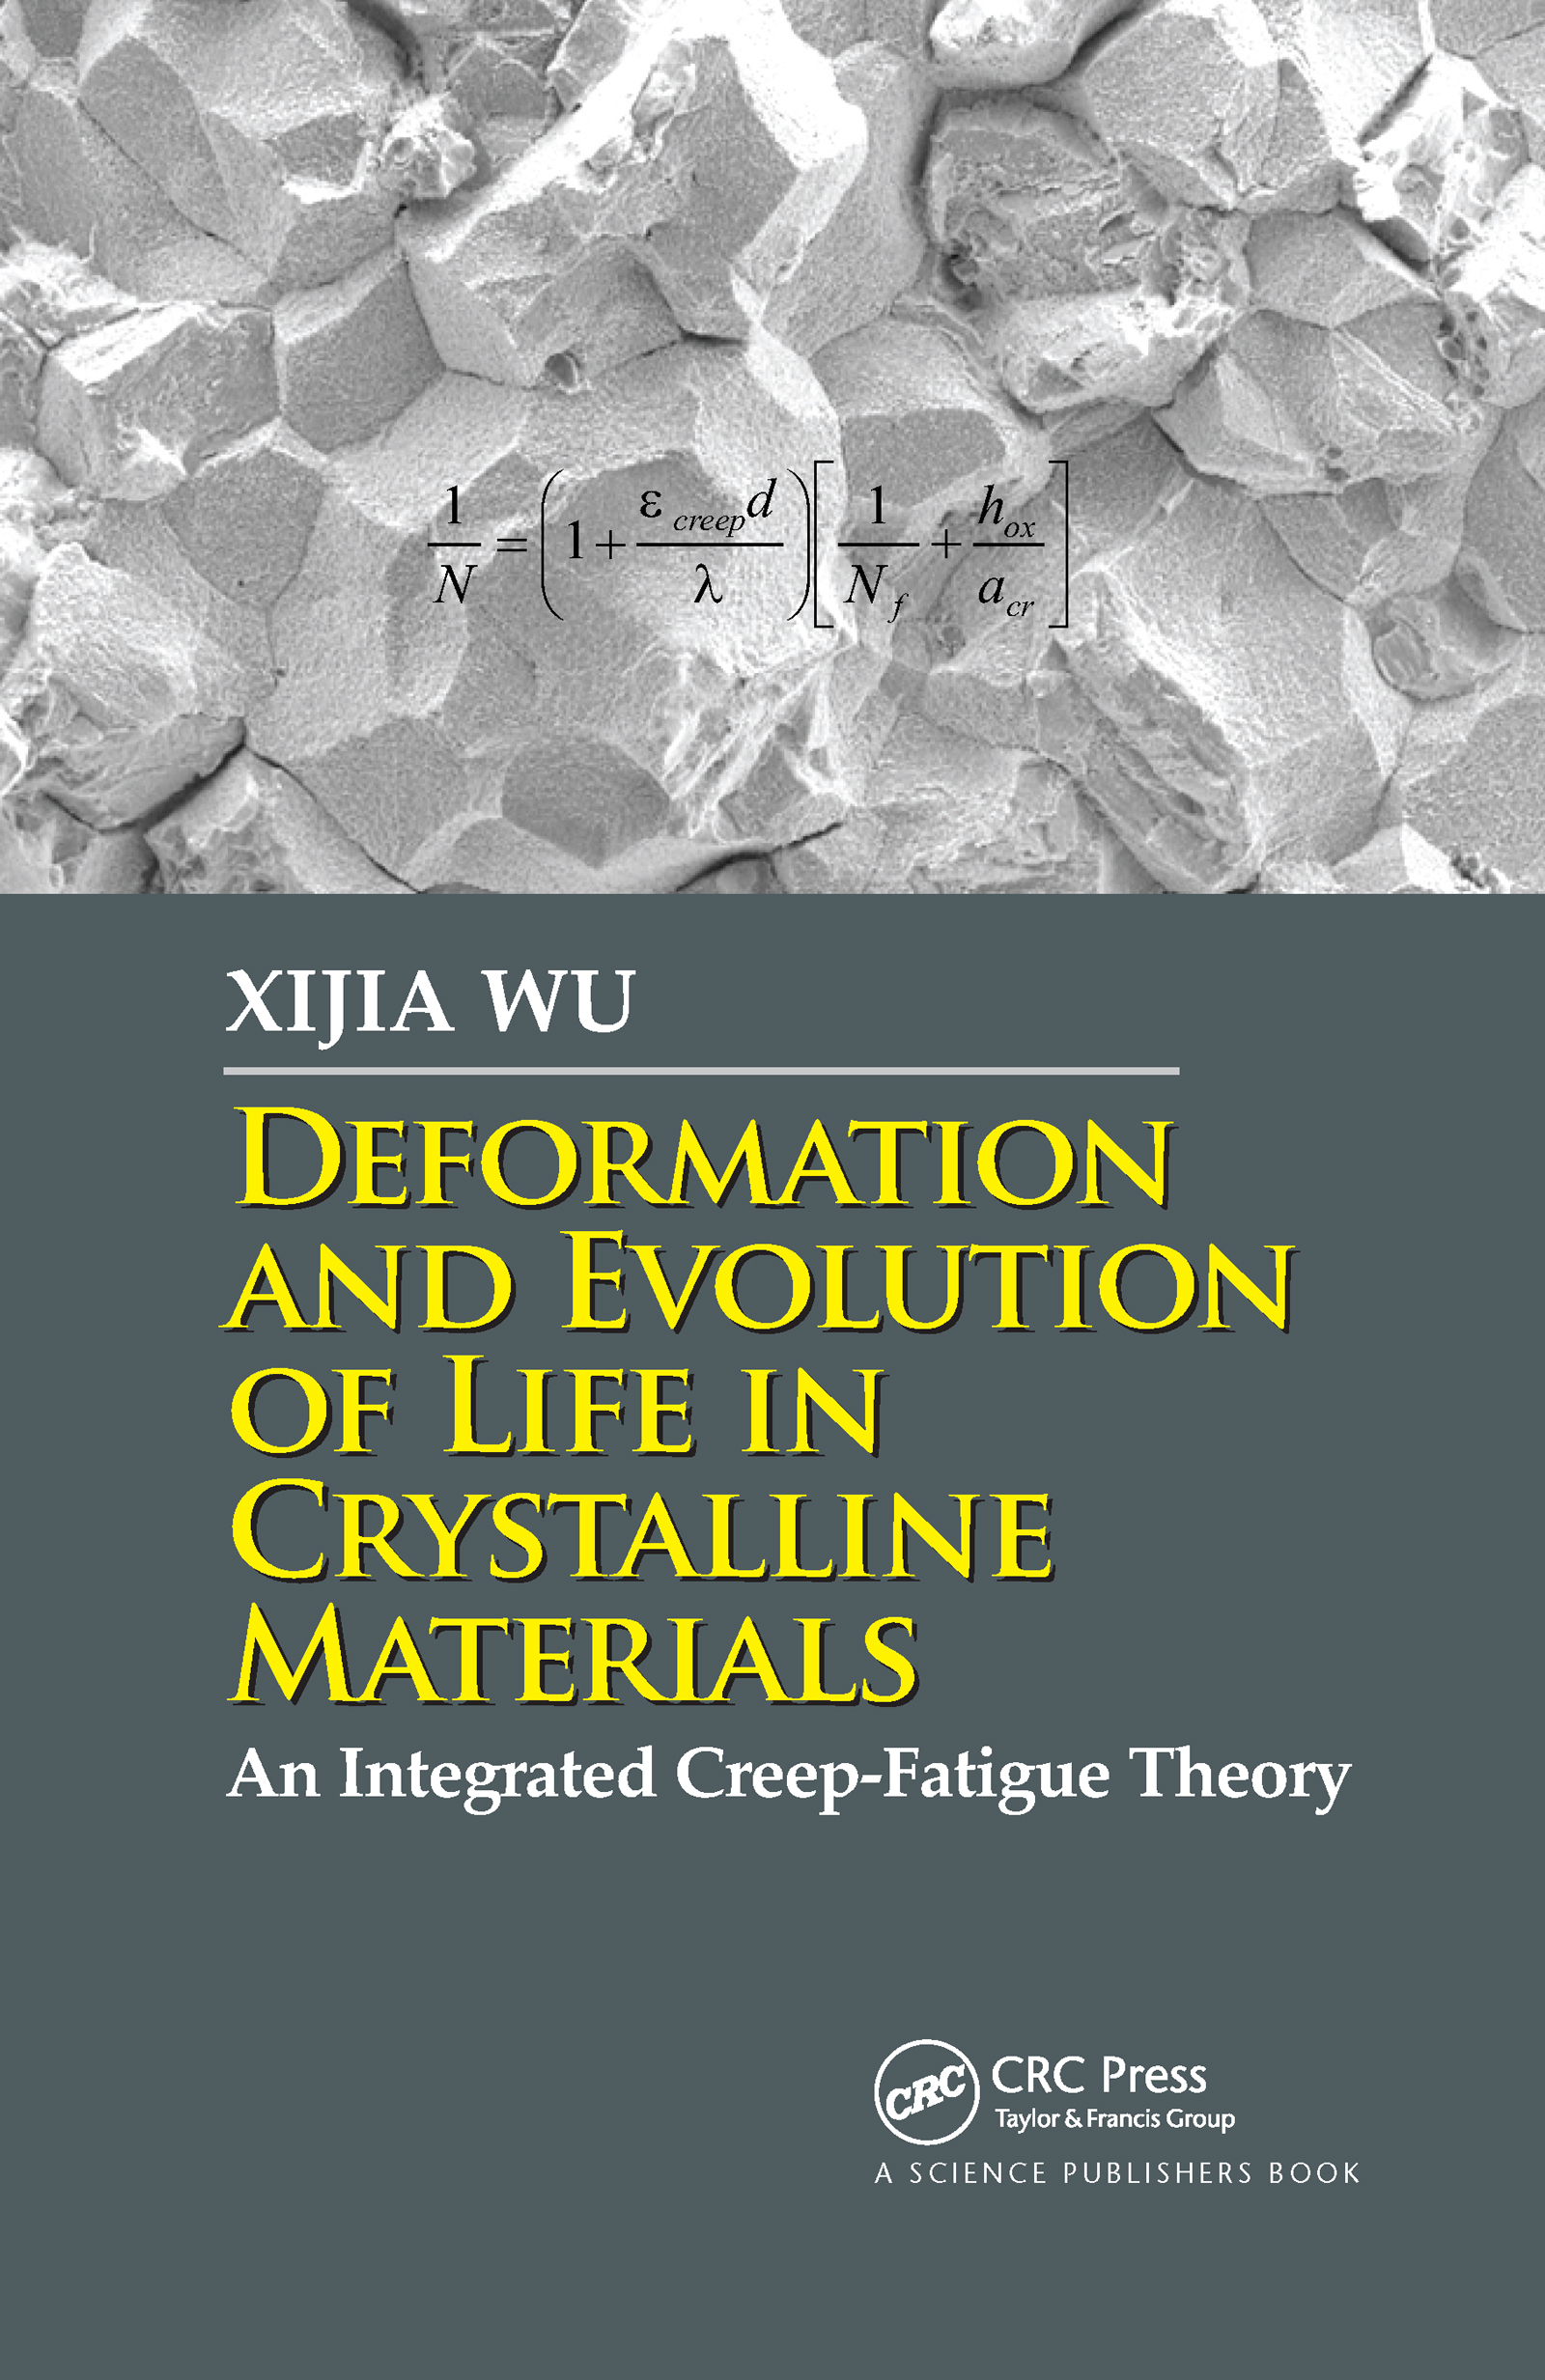 Deformation and Evolution of Life in Crystalline Materials